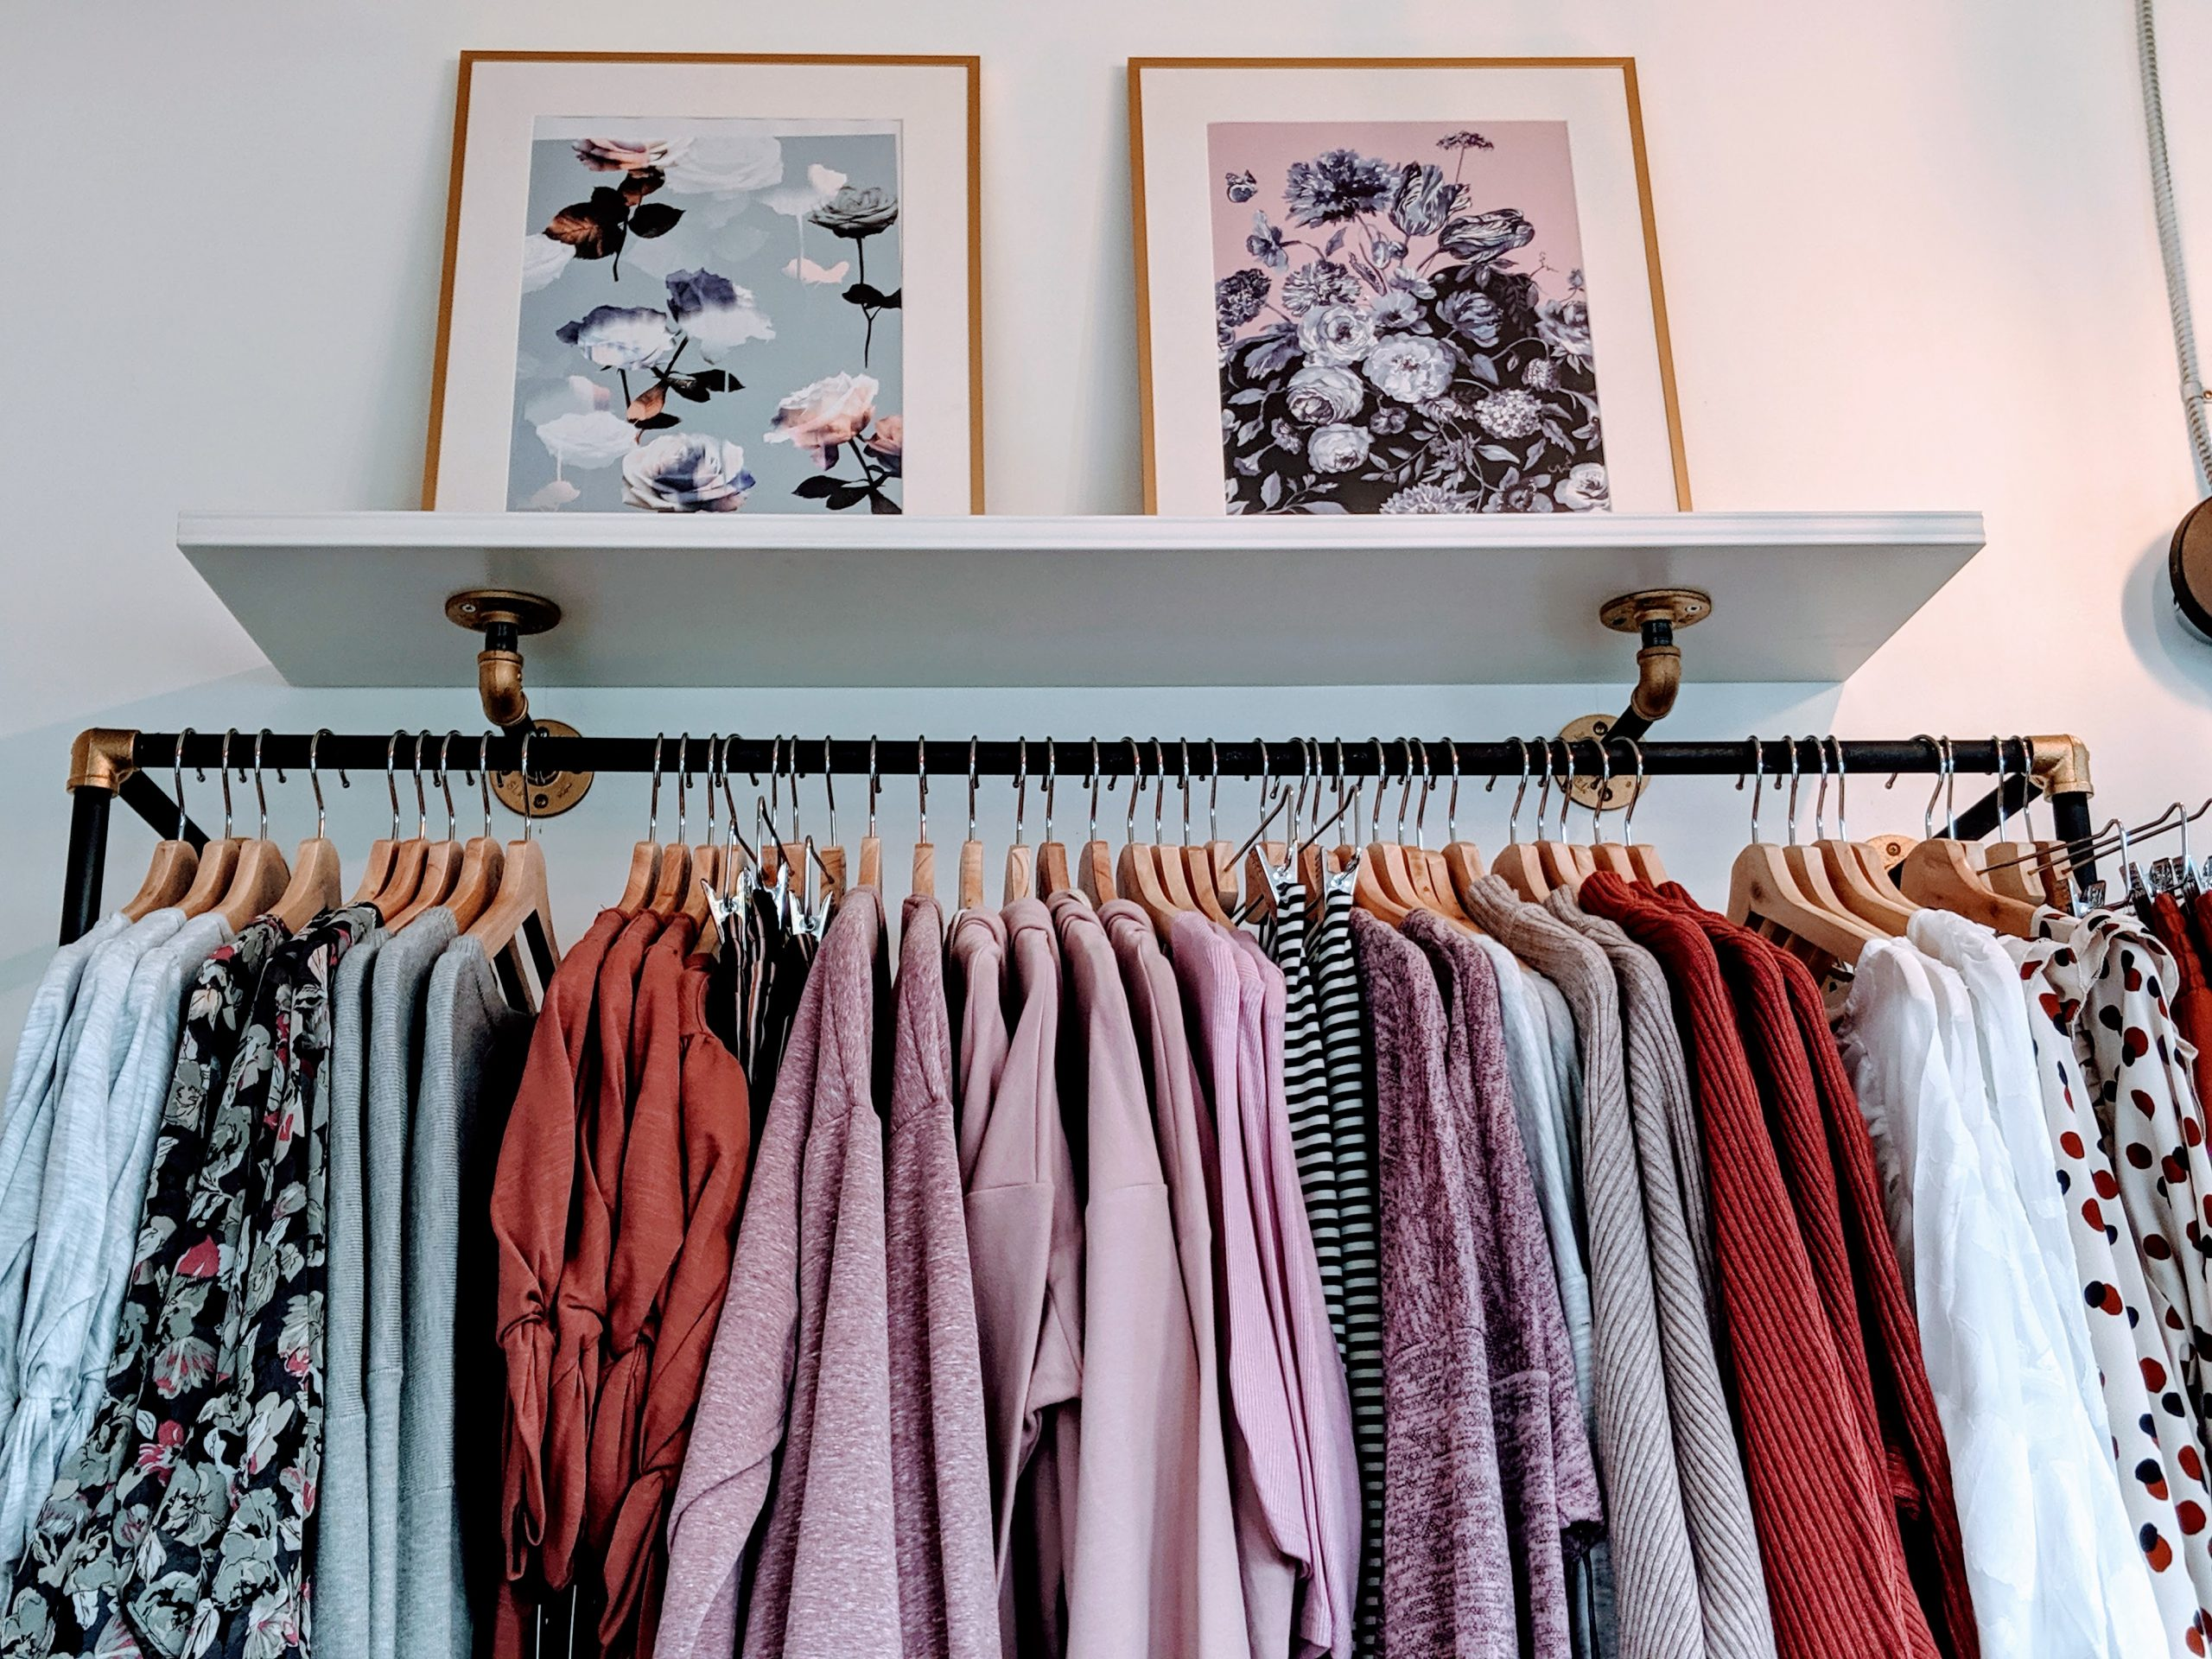 Rowena Sampang is the founder and owner of Pink Liberty adorable boutique based in Calgary and Okotoks called Pink Liberty, offering women cute, modern clothing at an affordable price.